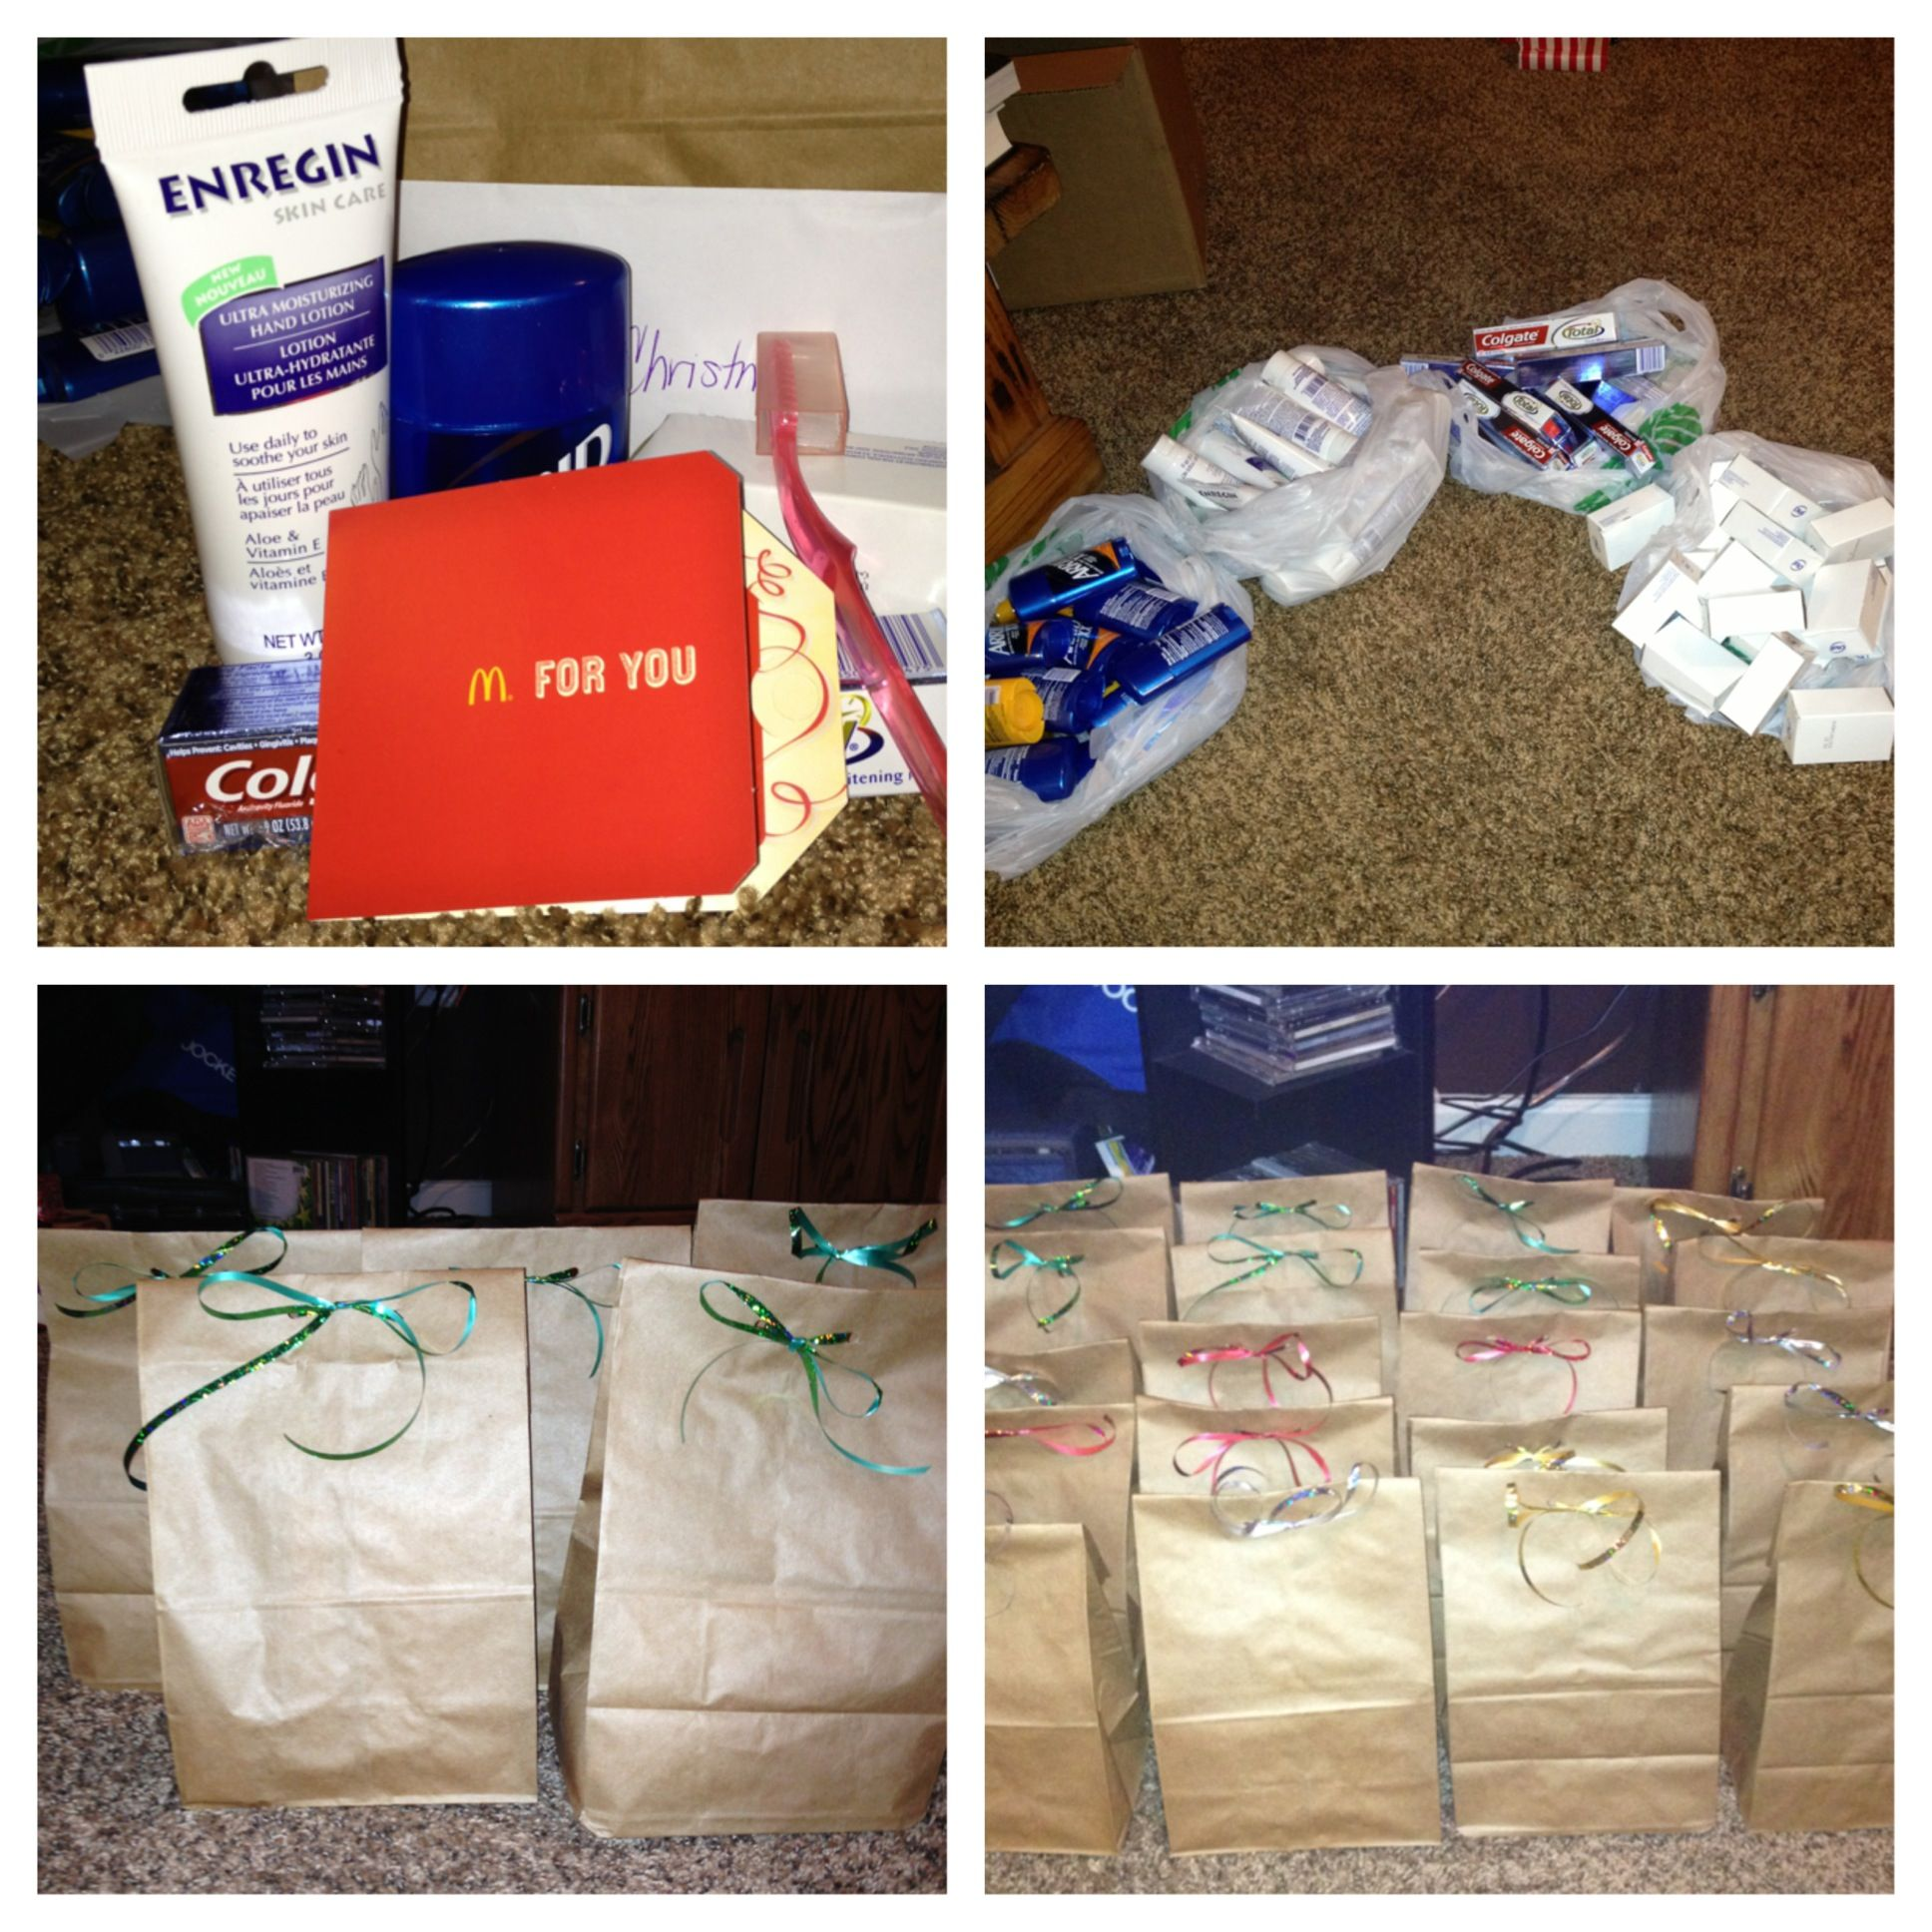 Pin By Candace Brown On Care Package Idea For Homeless Homeless Care Package Blessing Bags Care Package